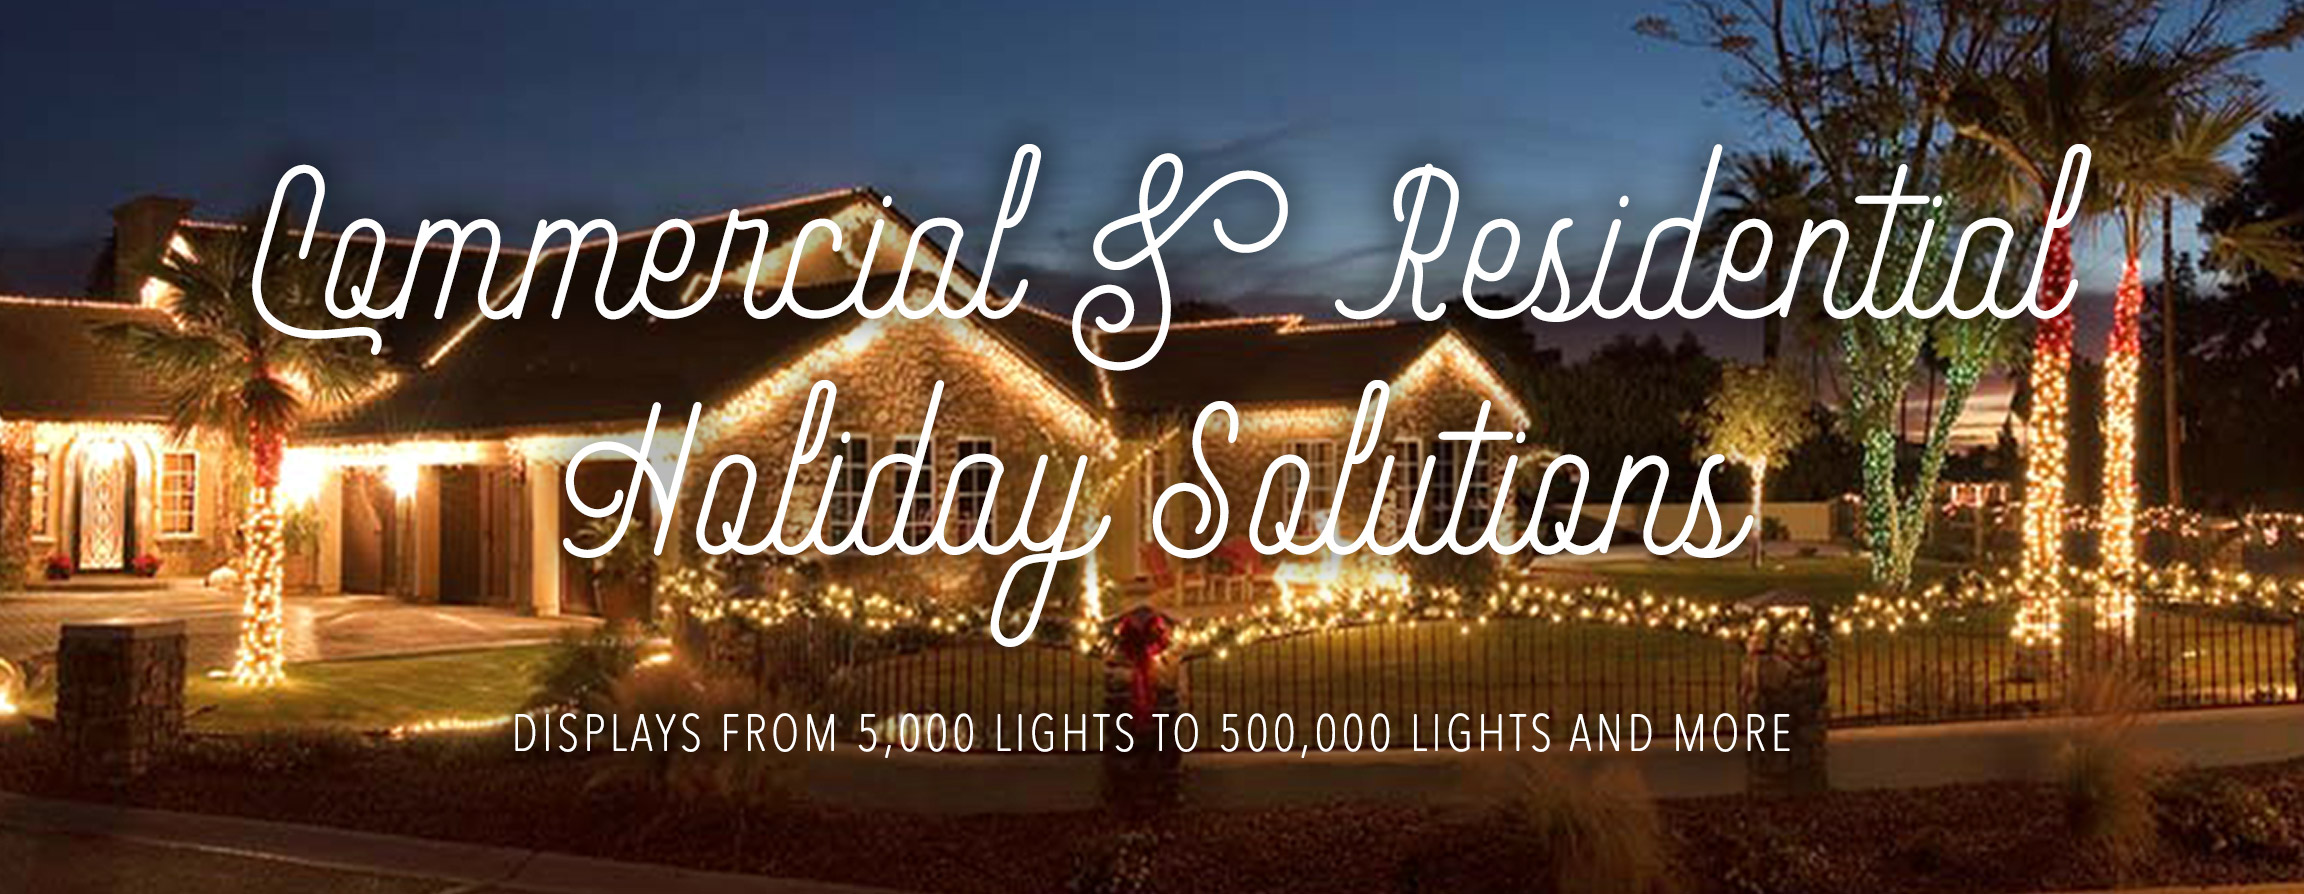 Commercial & Residential Holiday Lighting and Decorating Solutions. Large and small scape displays starting at $799. Custom designs and preset themes available. See what Spirit Lighting can do for YOU!